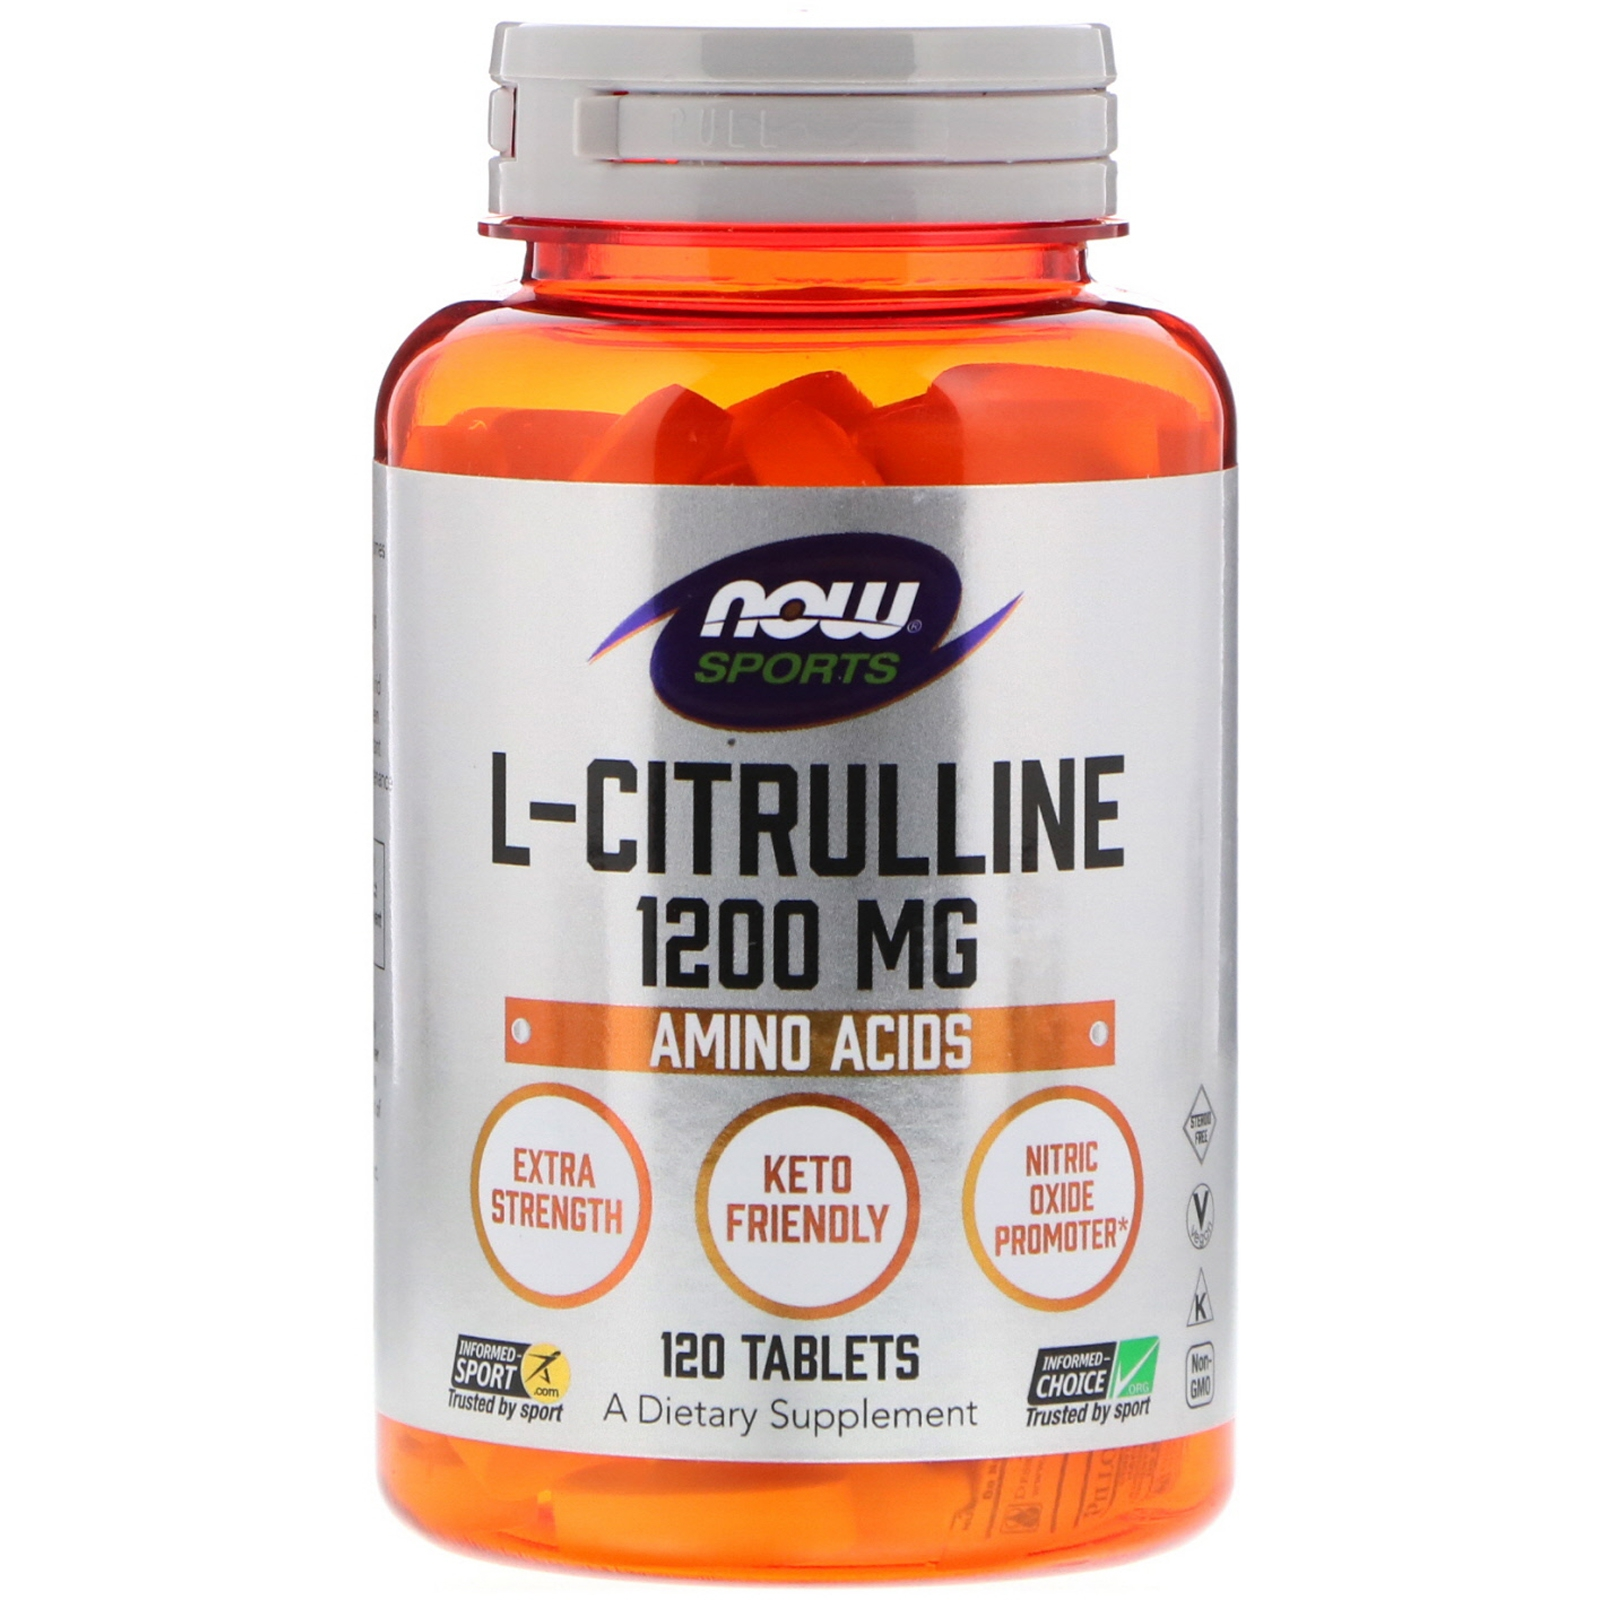 Image of L-Citrulline - Extra Strength 1.200 mg (120 tablets) - Now Foods 0733739001160